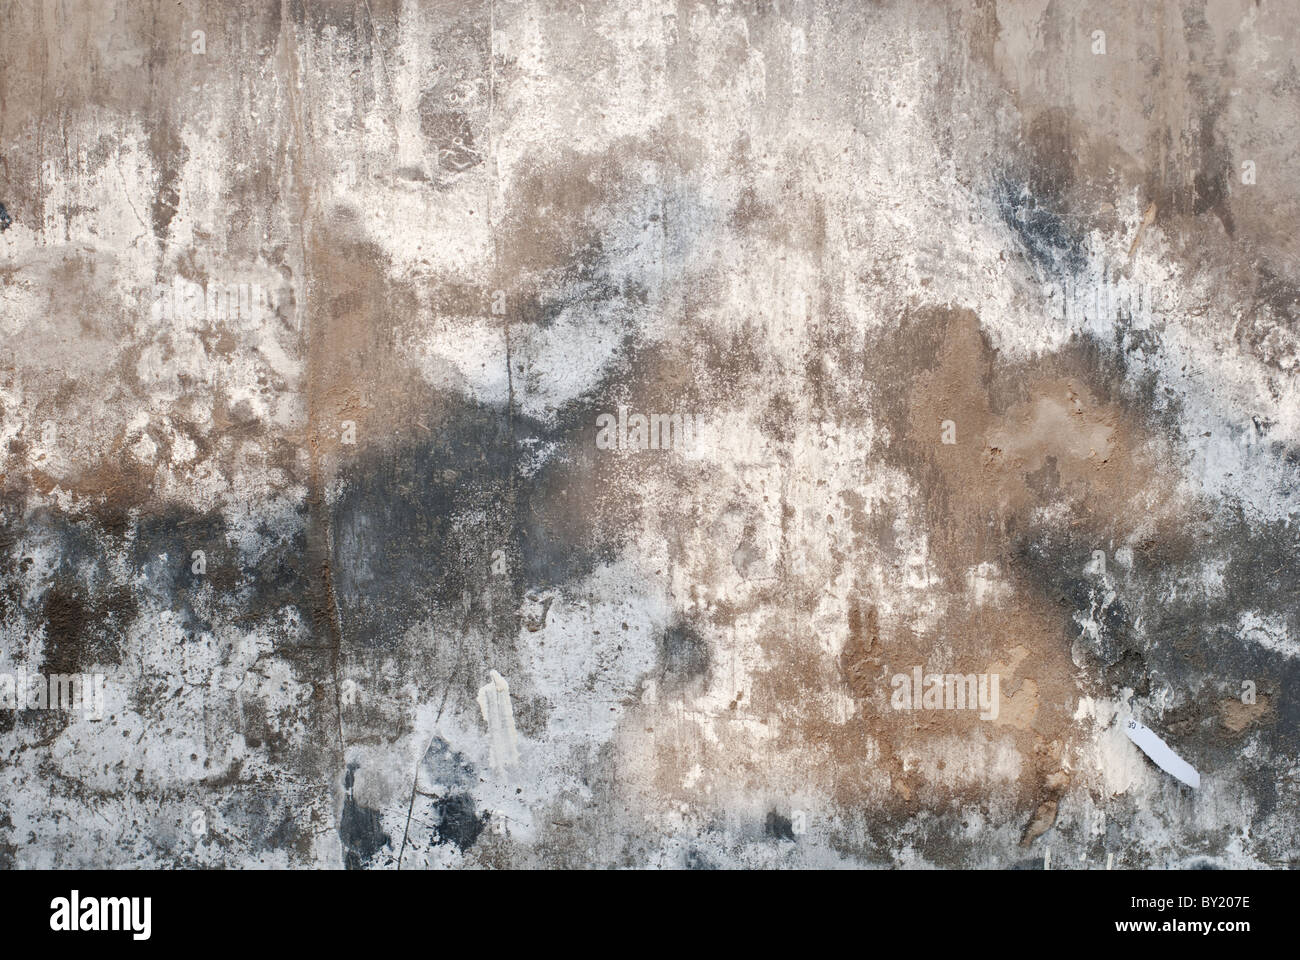 Detail Of A Concrete Wall With Cracks And White Mold Stock Photo